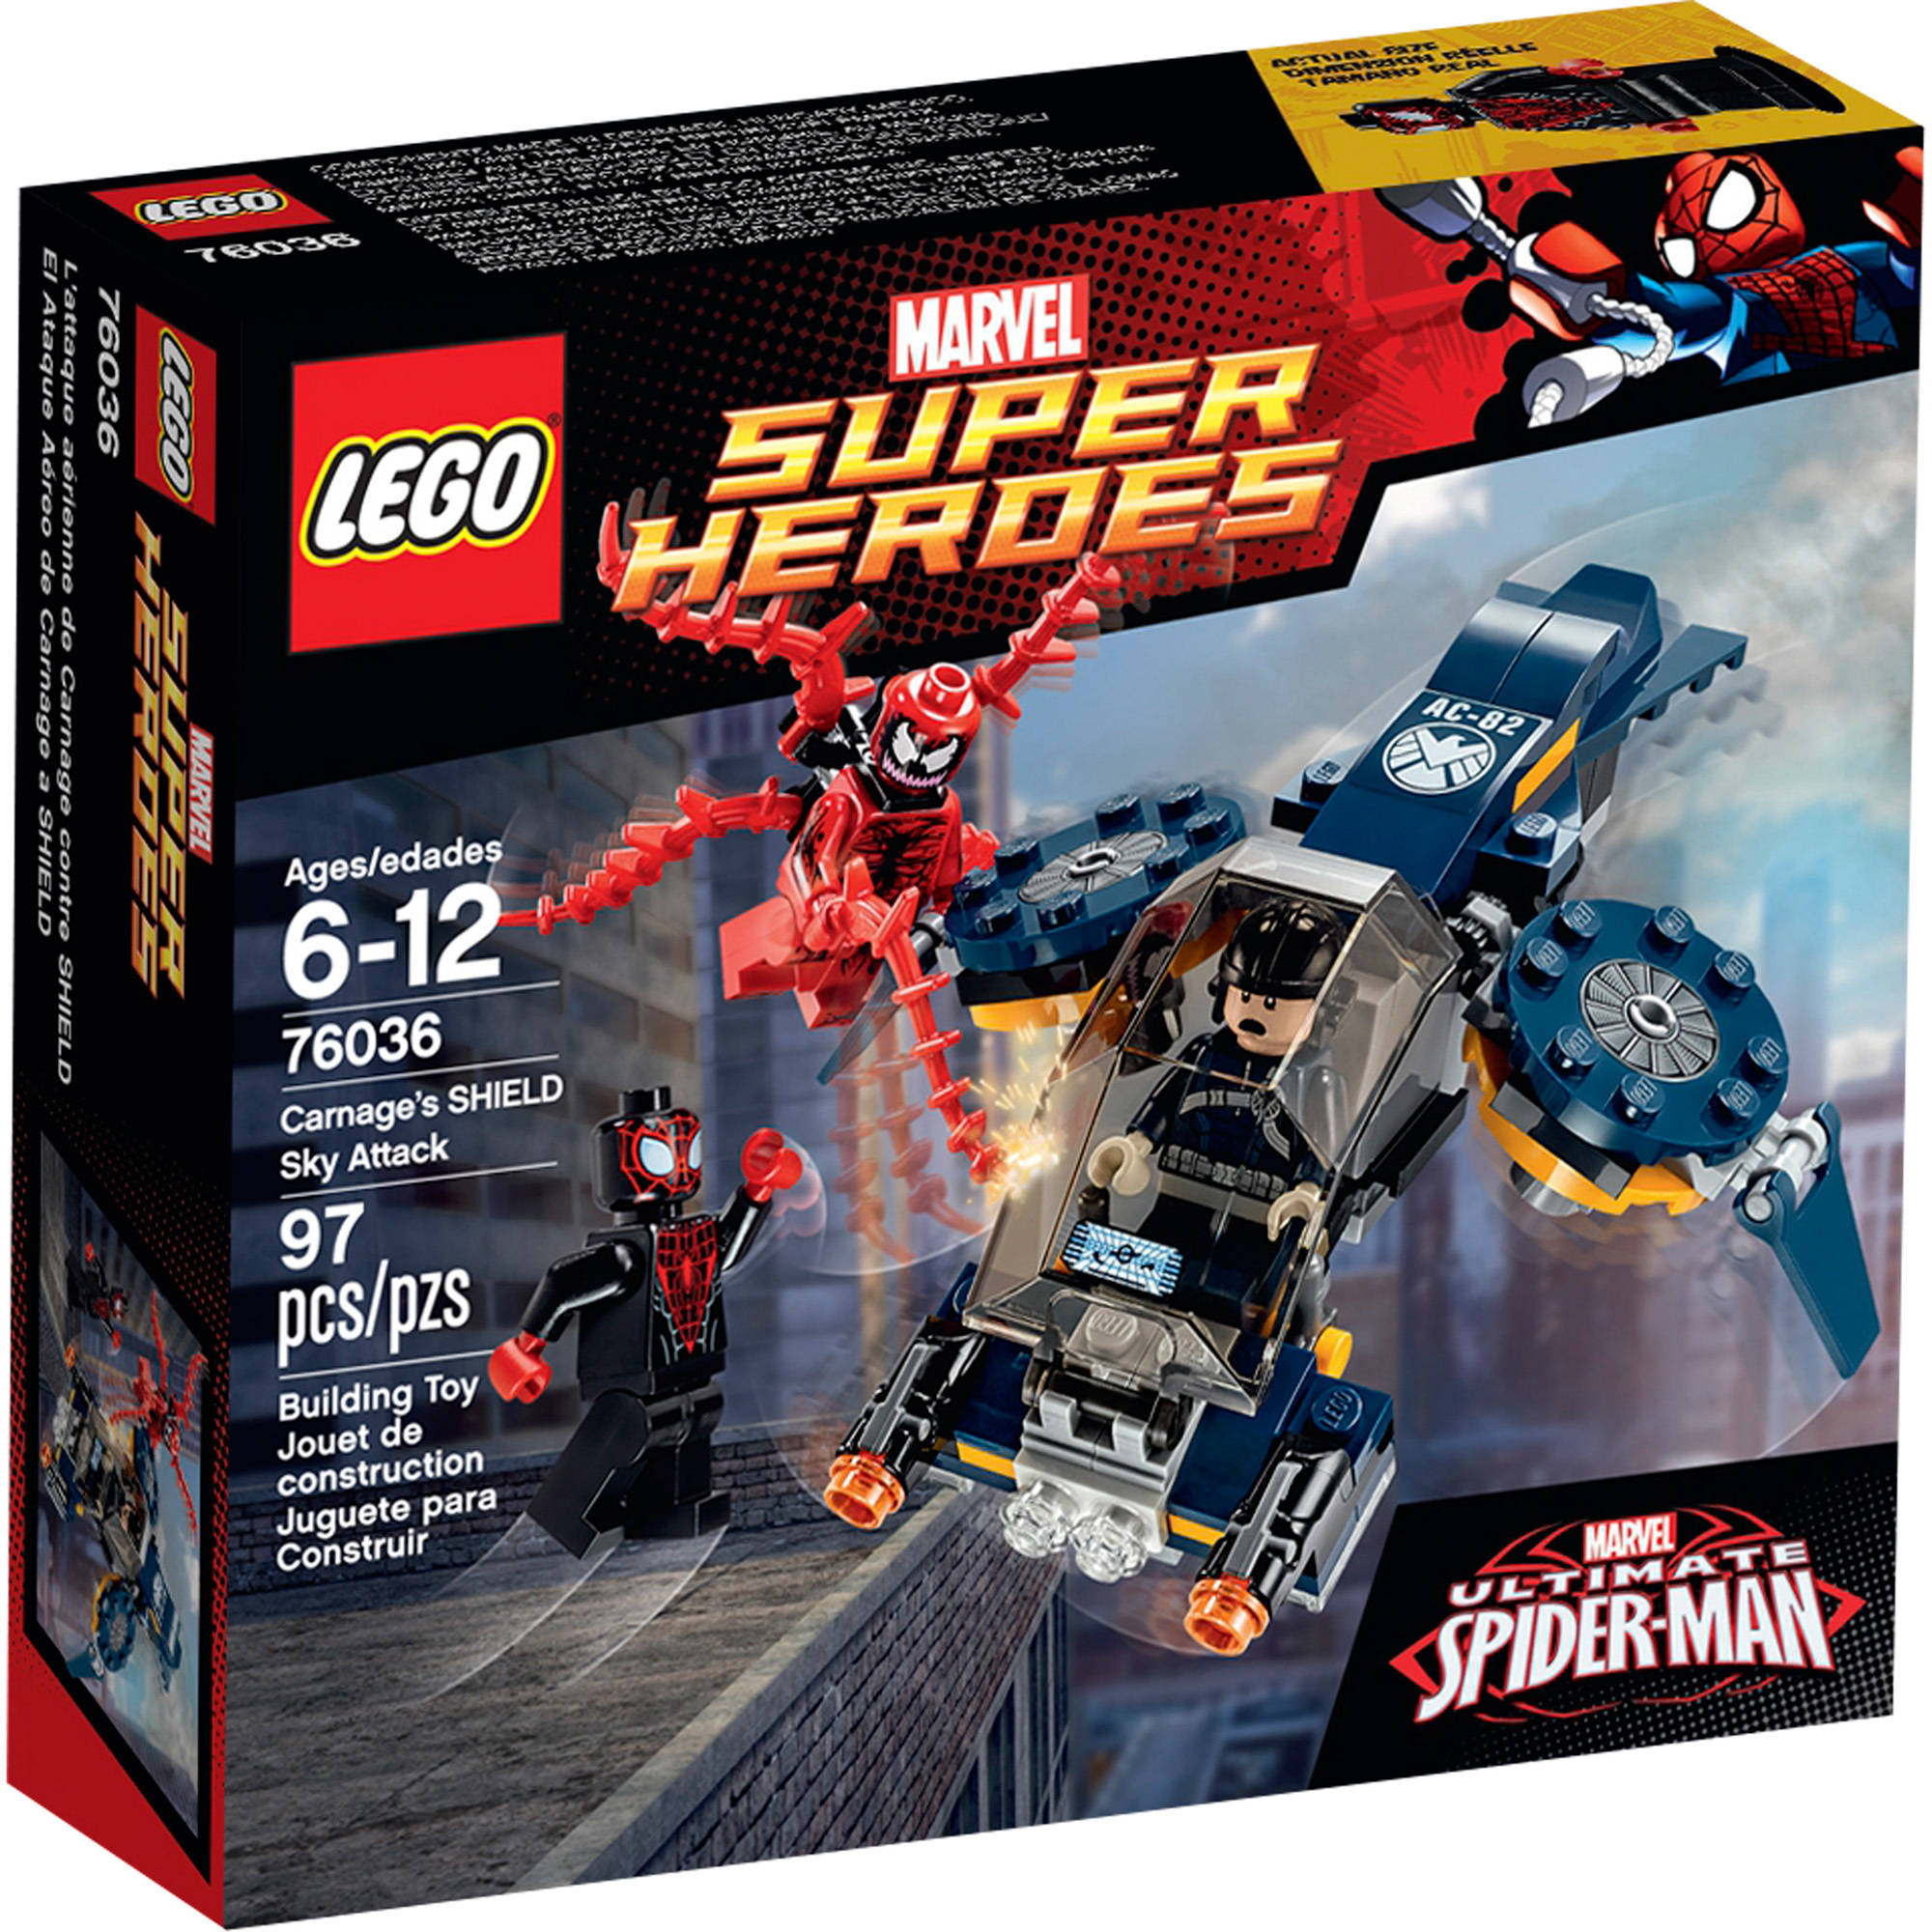 LEGO Super Heroes Carnage's SHIELD Sky Attack, 76036